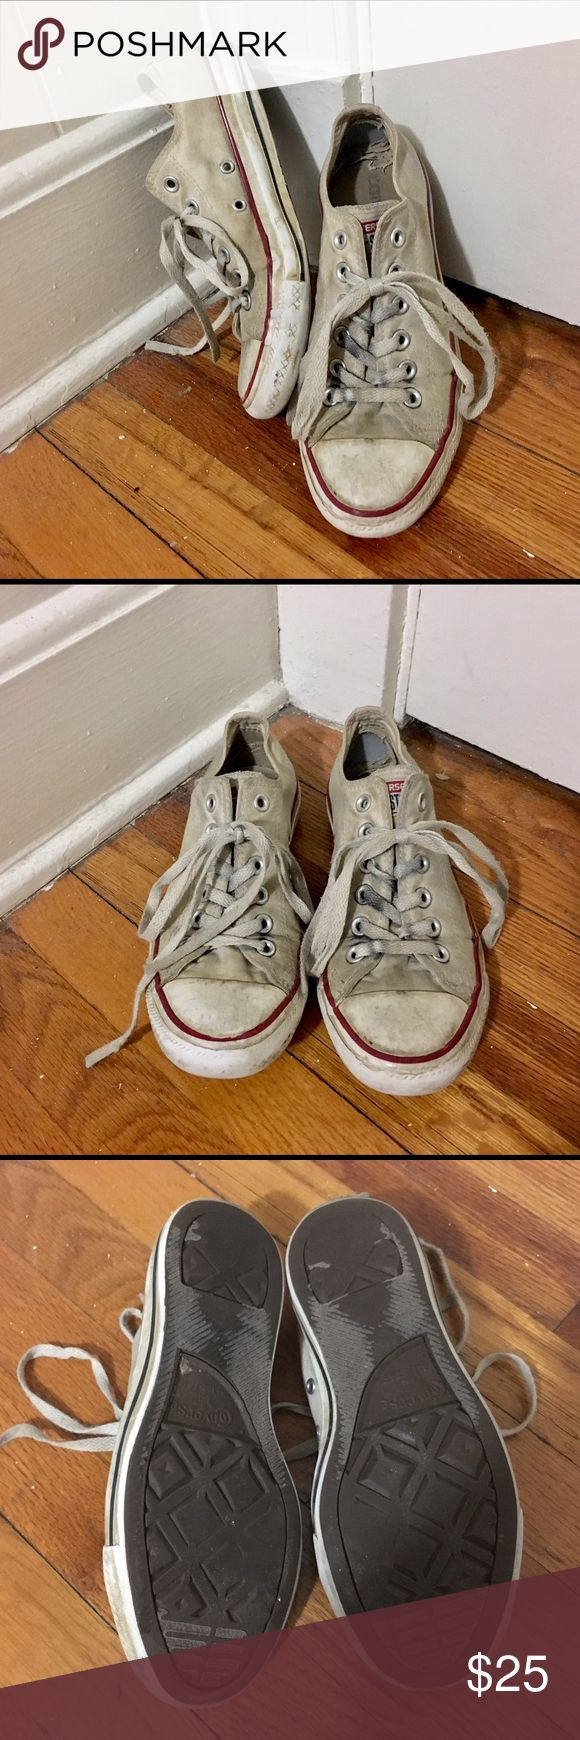 Off white Converse Signs of wear-new laces would help Very popular shoe Feel free to ask questions! Converse Shoes Sneakers